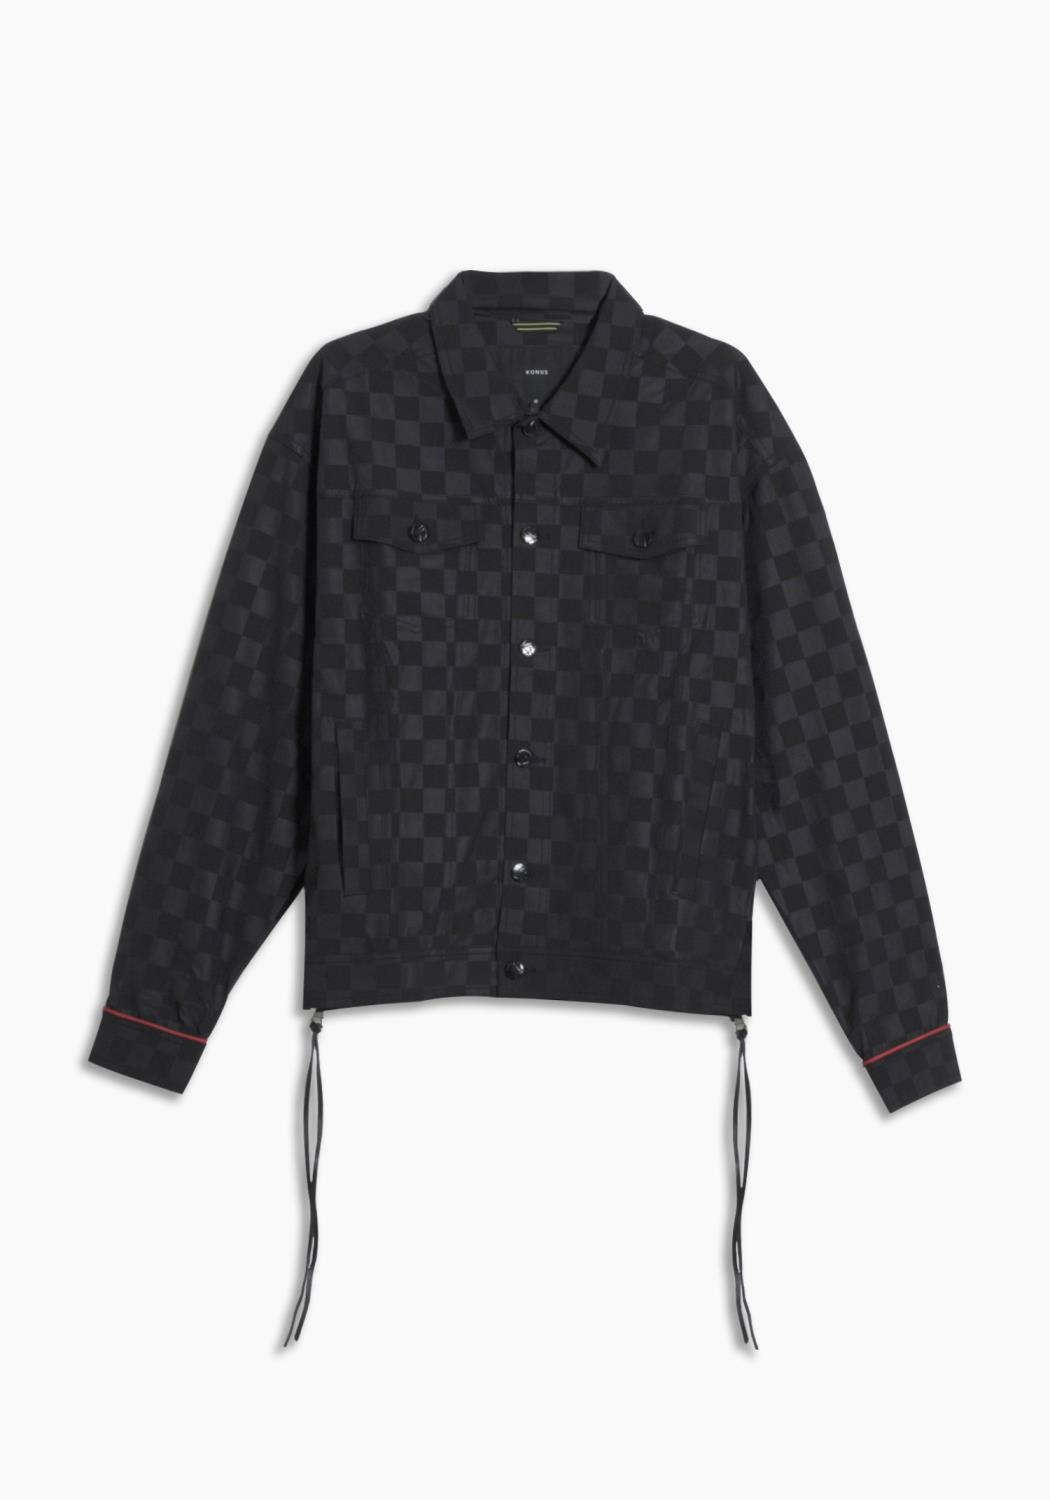 Konus Mens Checkered Trucker Jacket / Hamilton